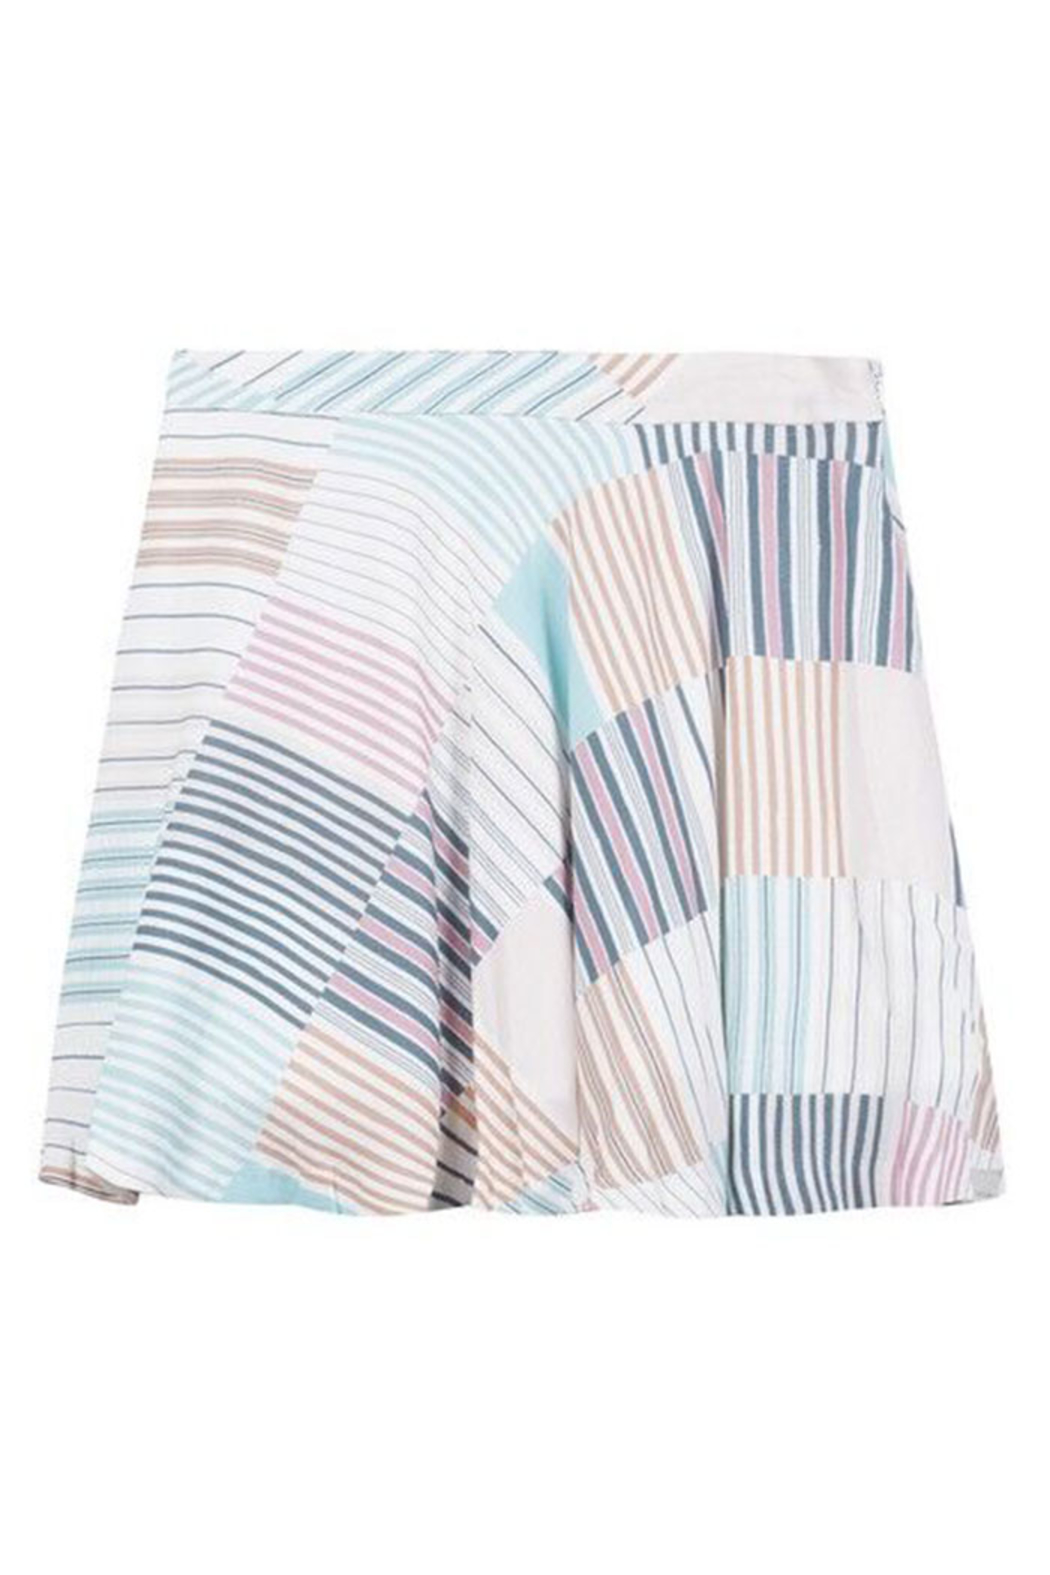 Paul Smith 8-14 Years Striped Skirt - Main Image